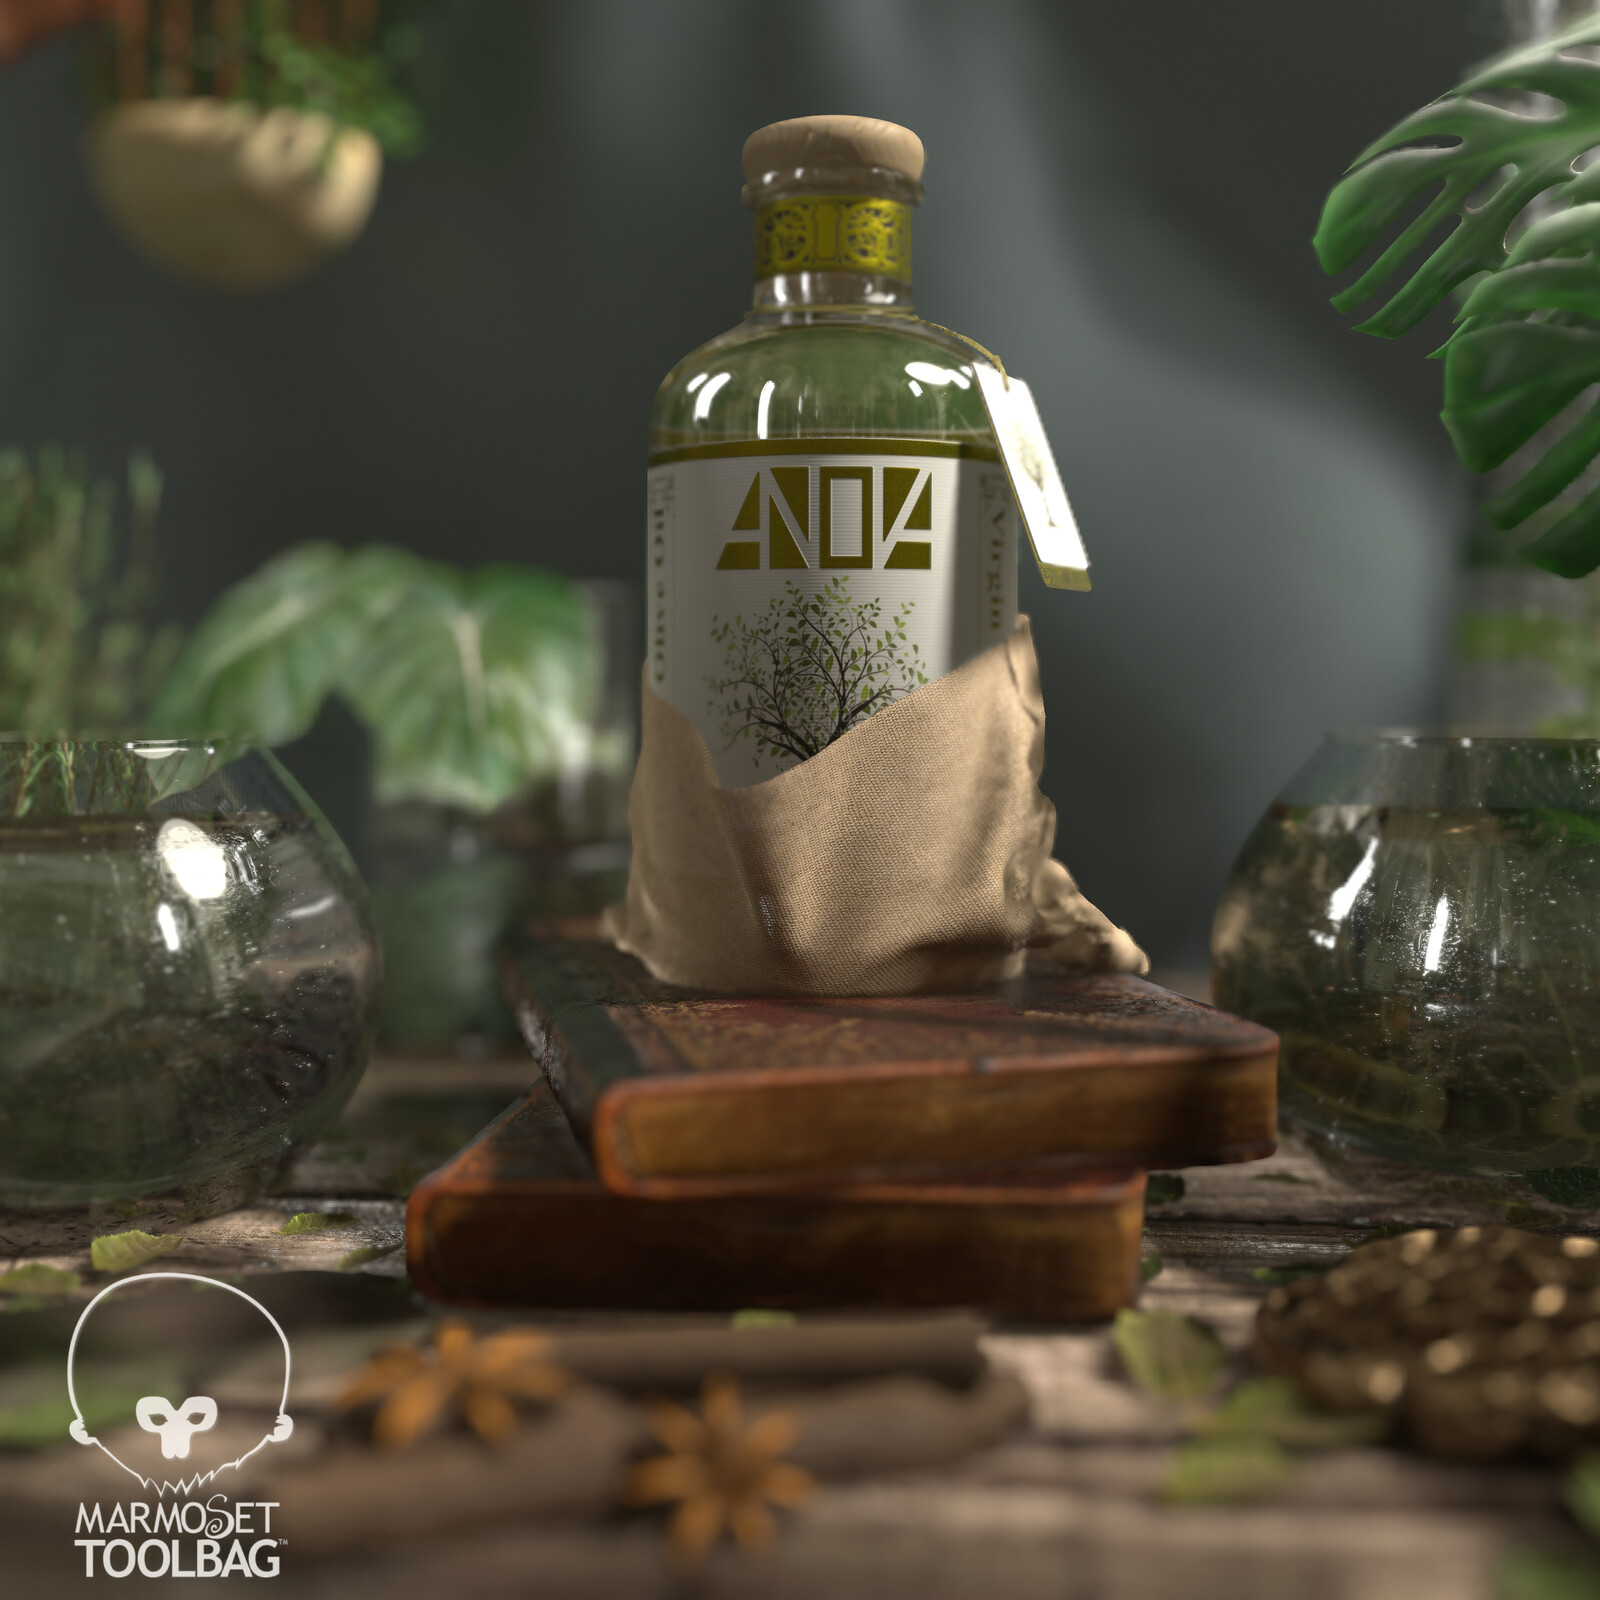 Tutorial - Realtime Still Life Scene Creation